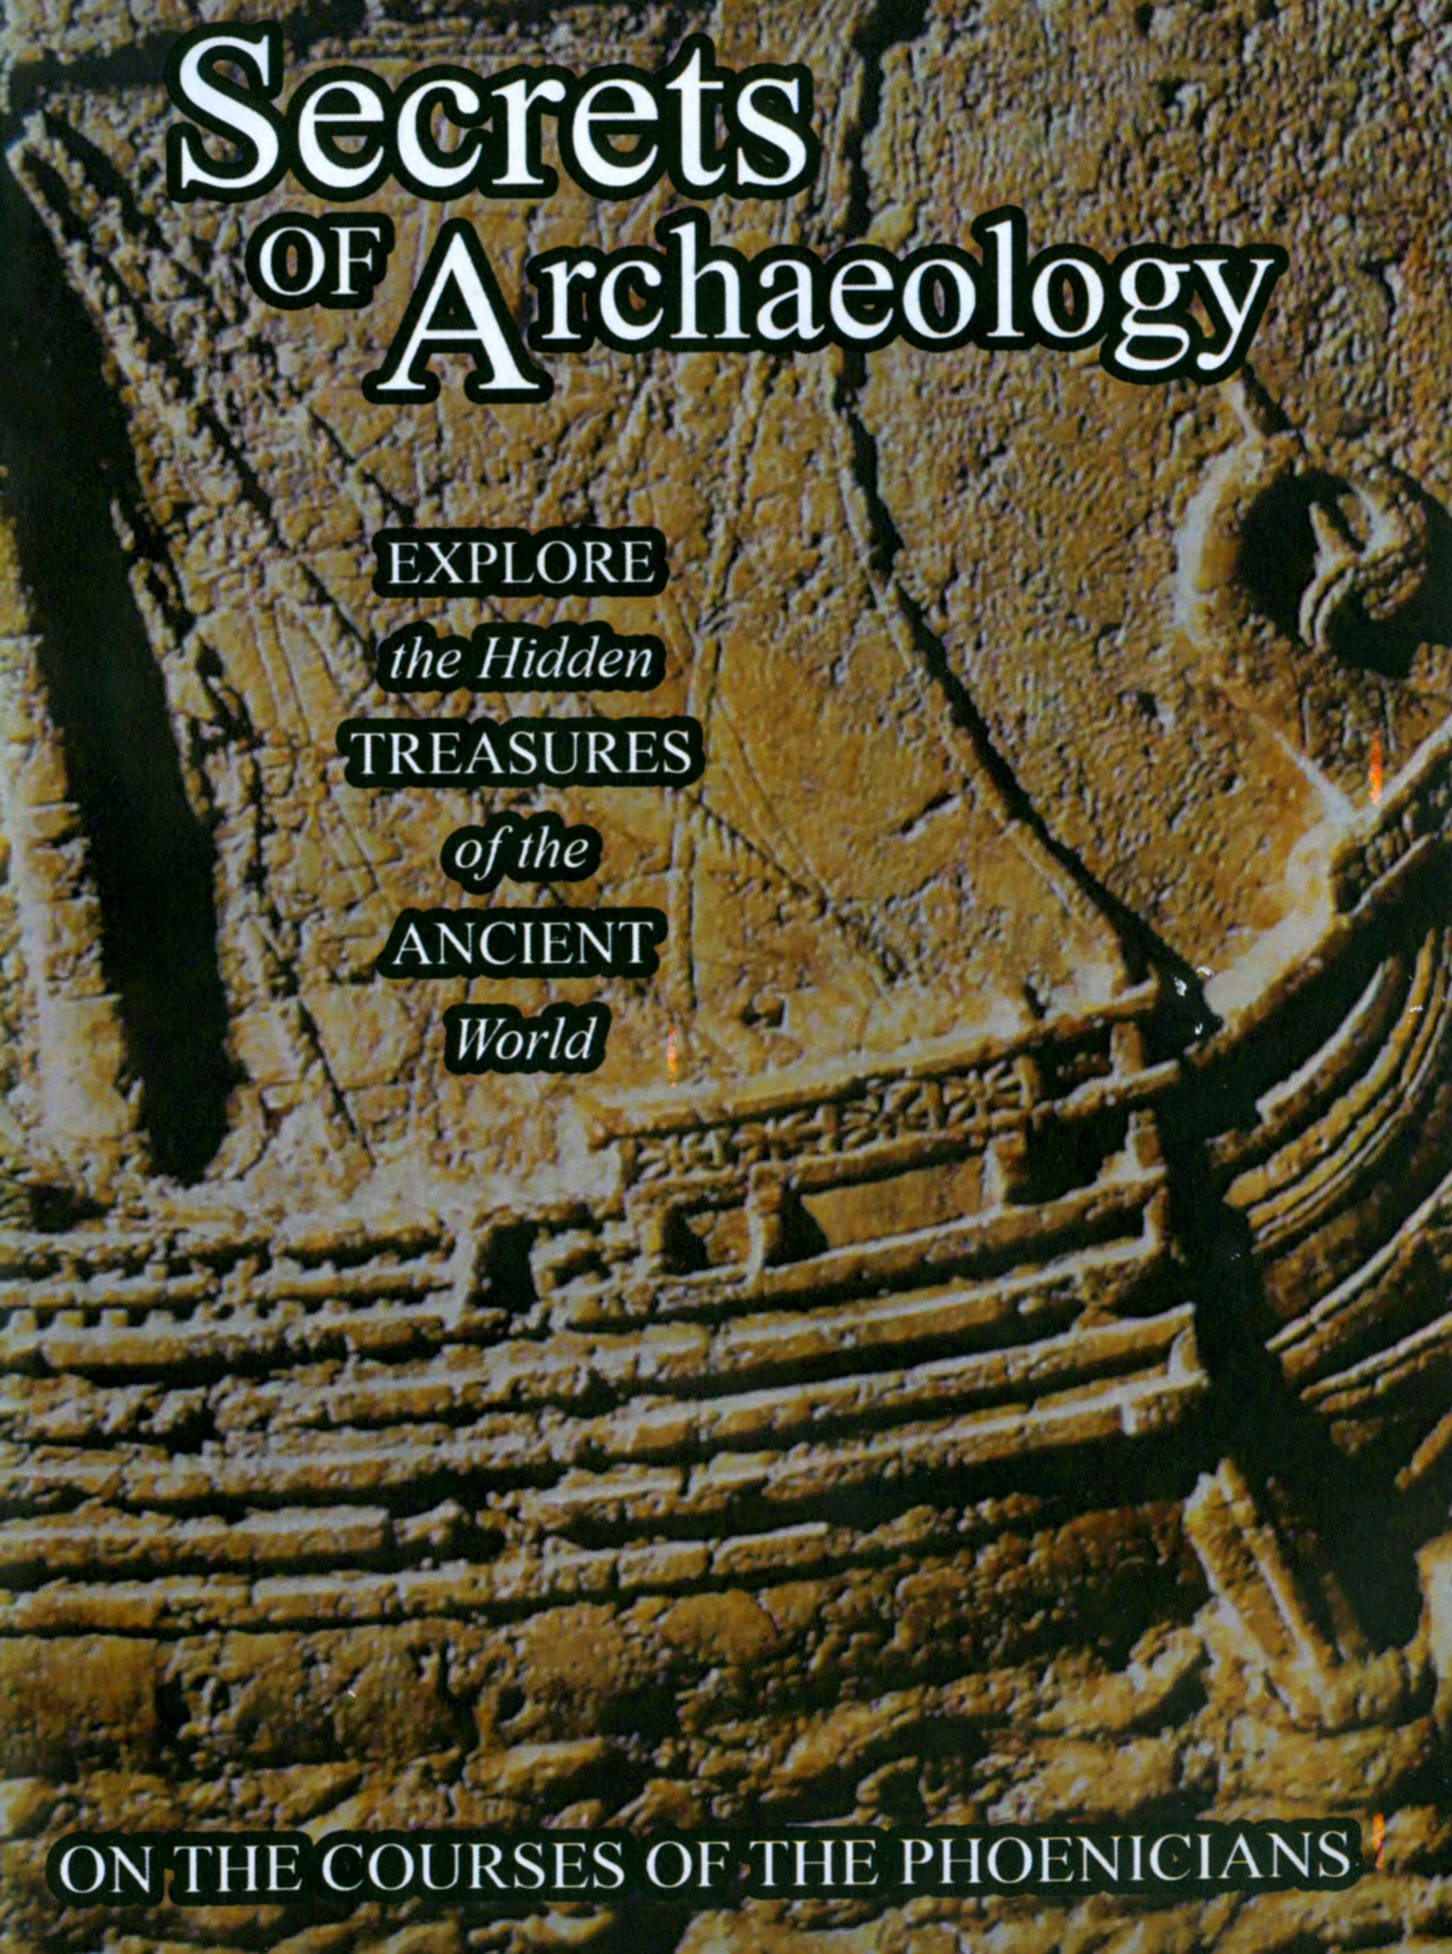 Secrets of Archaeology: Sailing With the Phoenicians